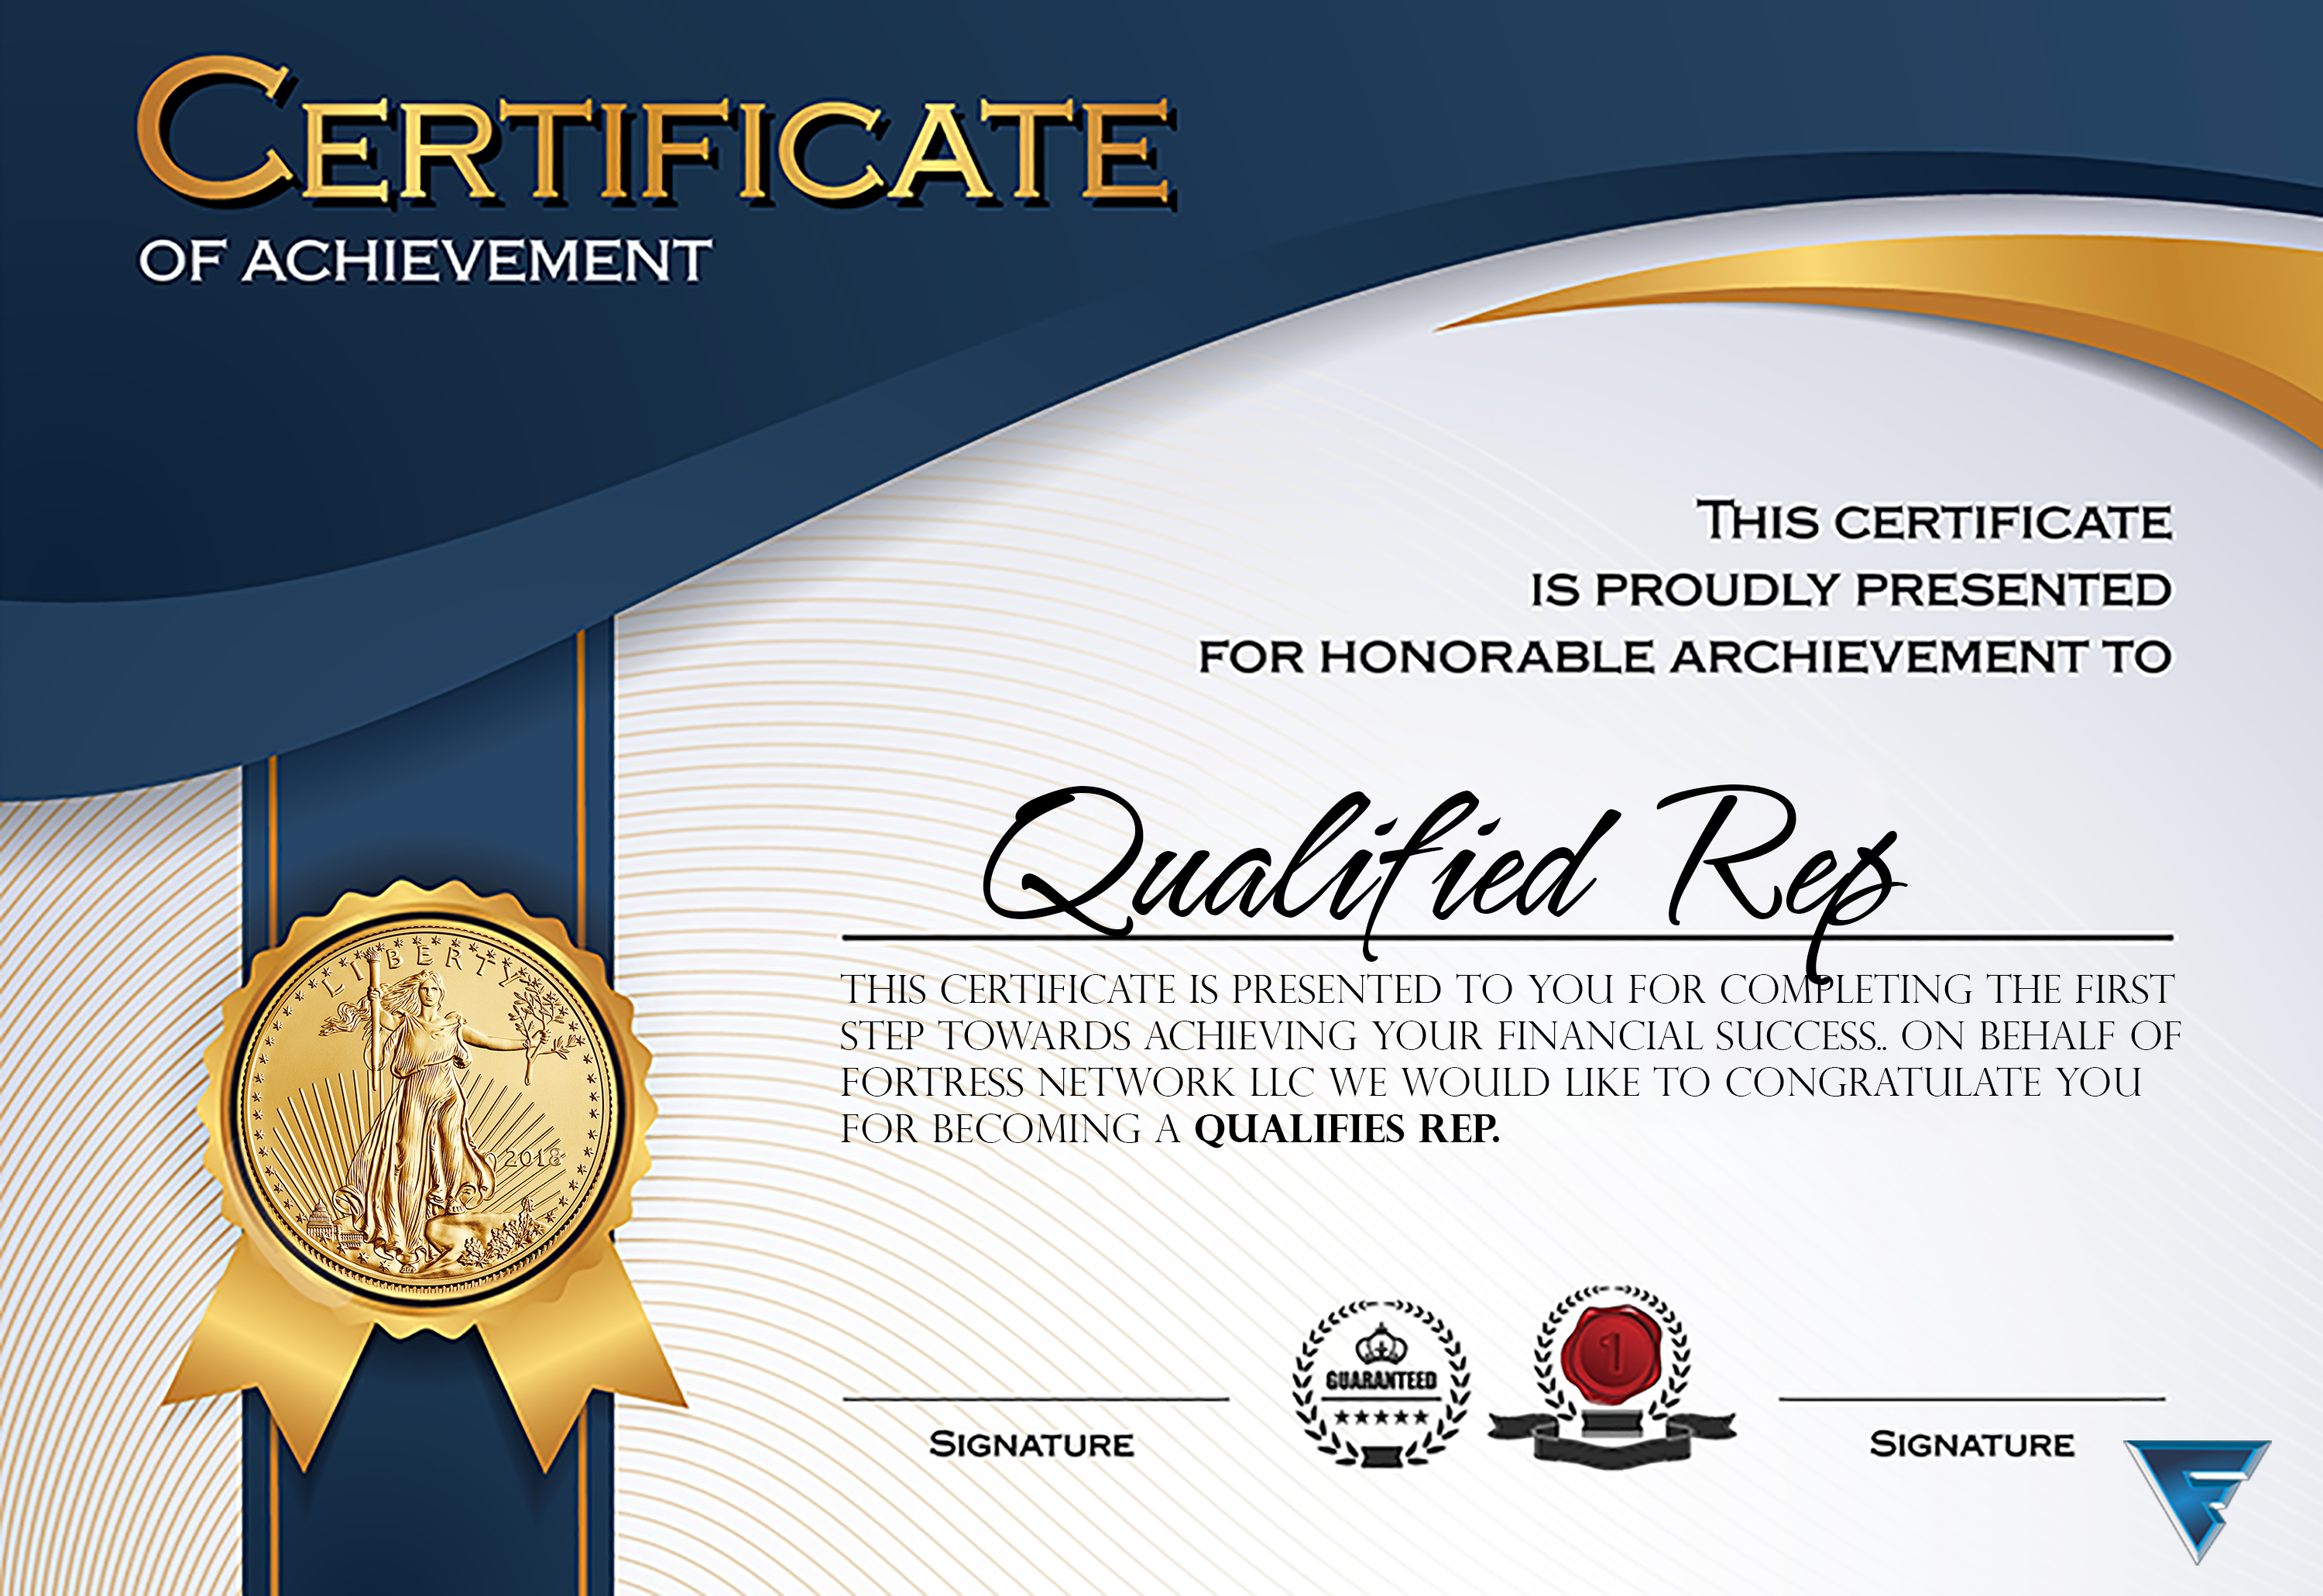 http://fortressnetworkllc.com/images/certificate.png